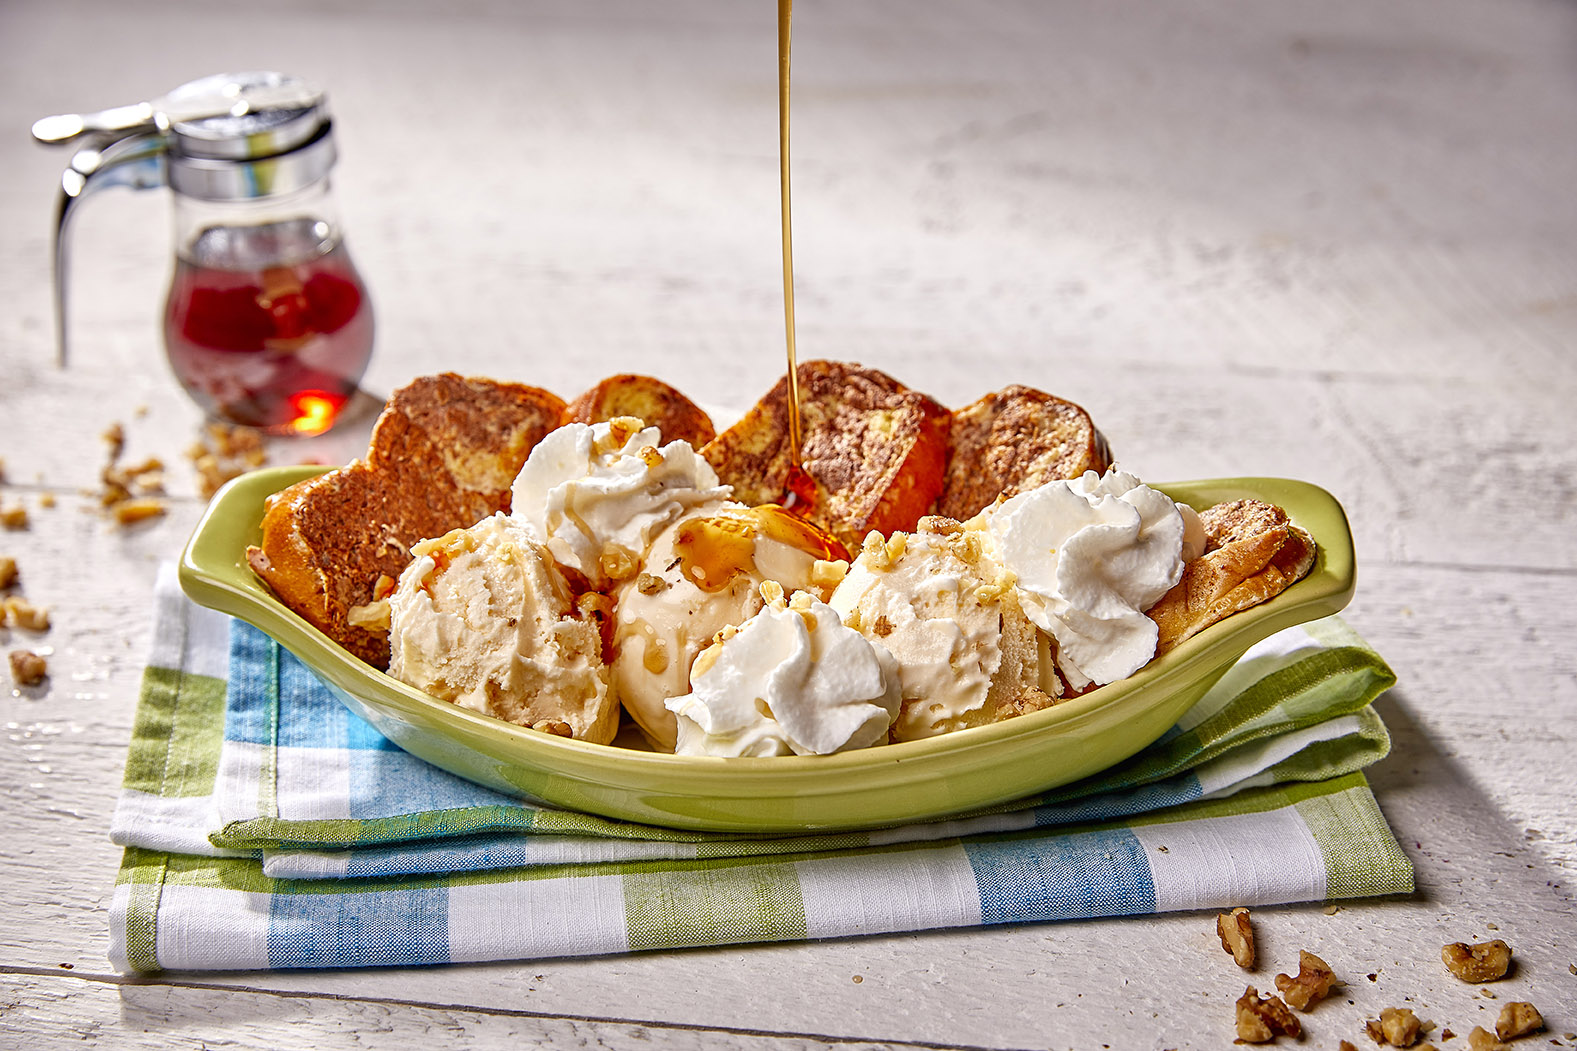 FRENCH TOAST SUNDAE